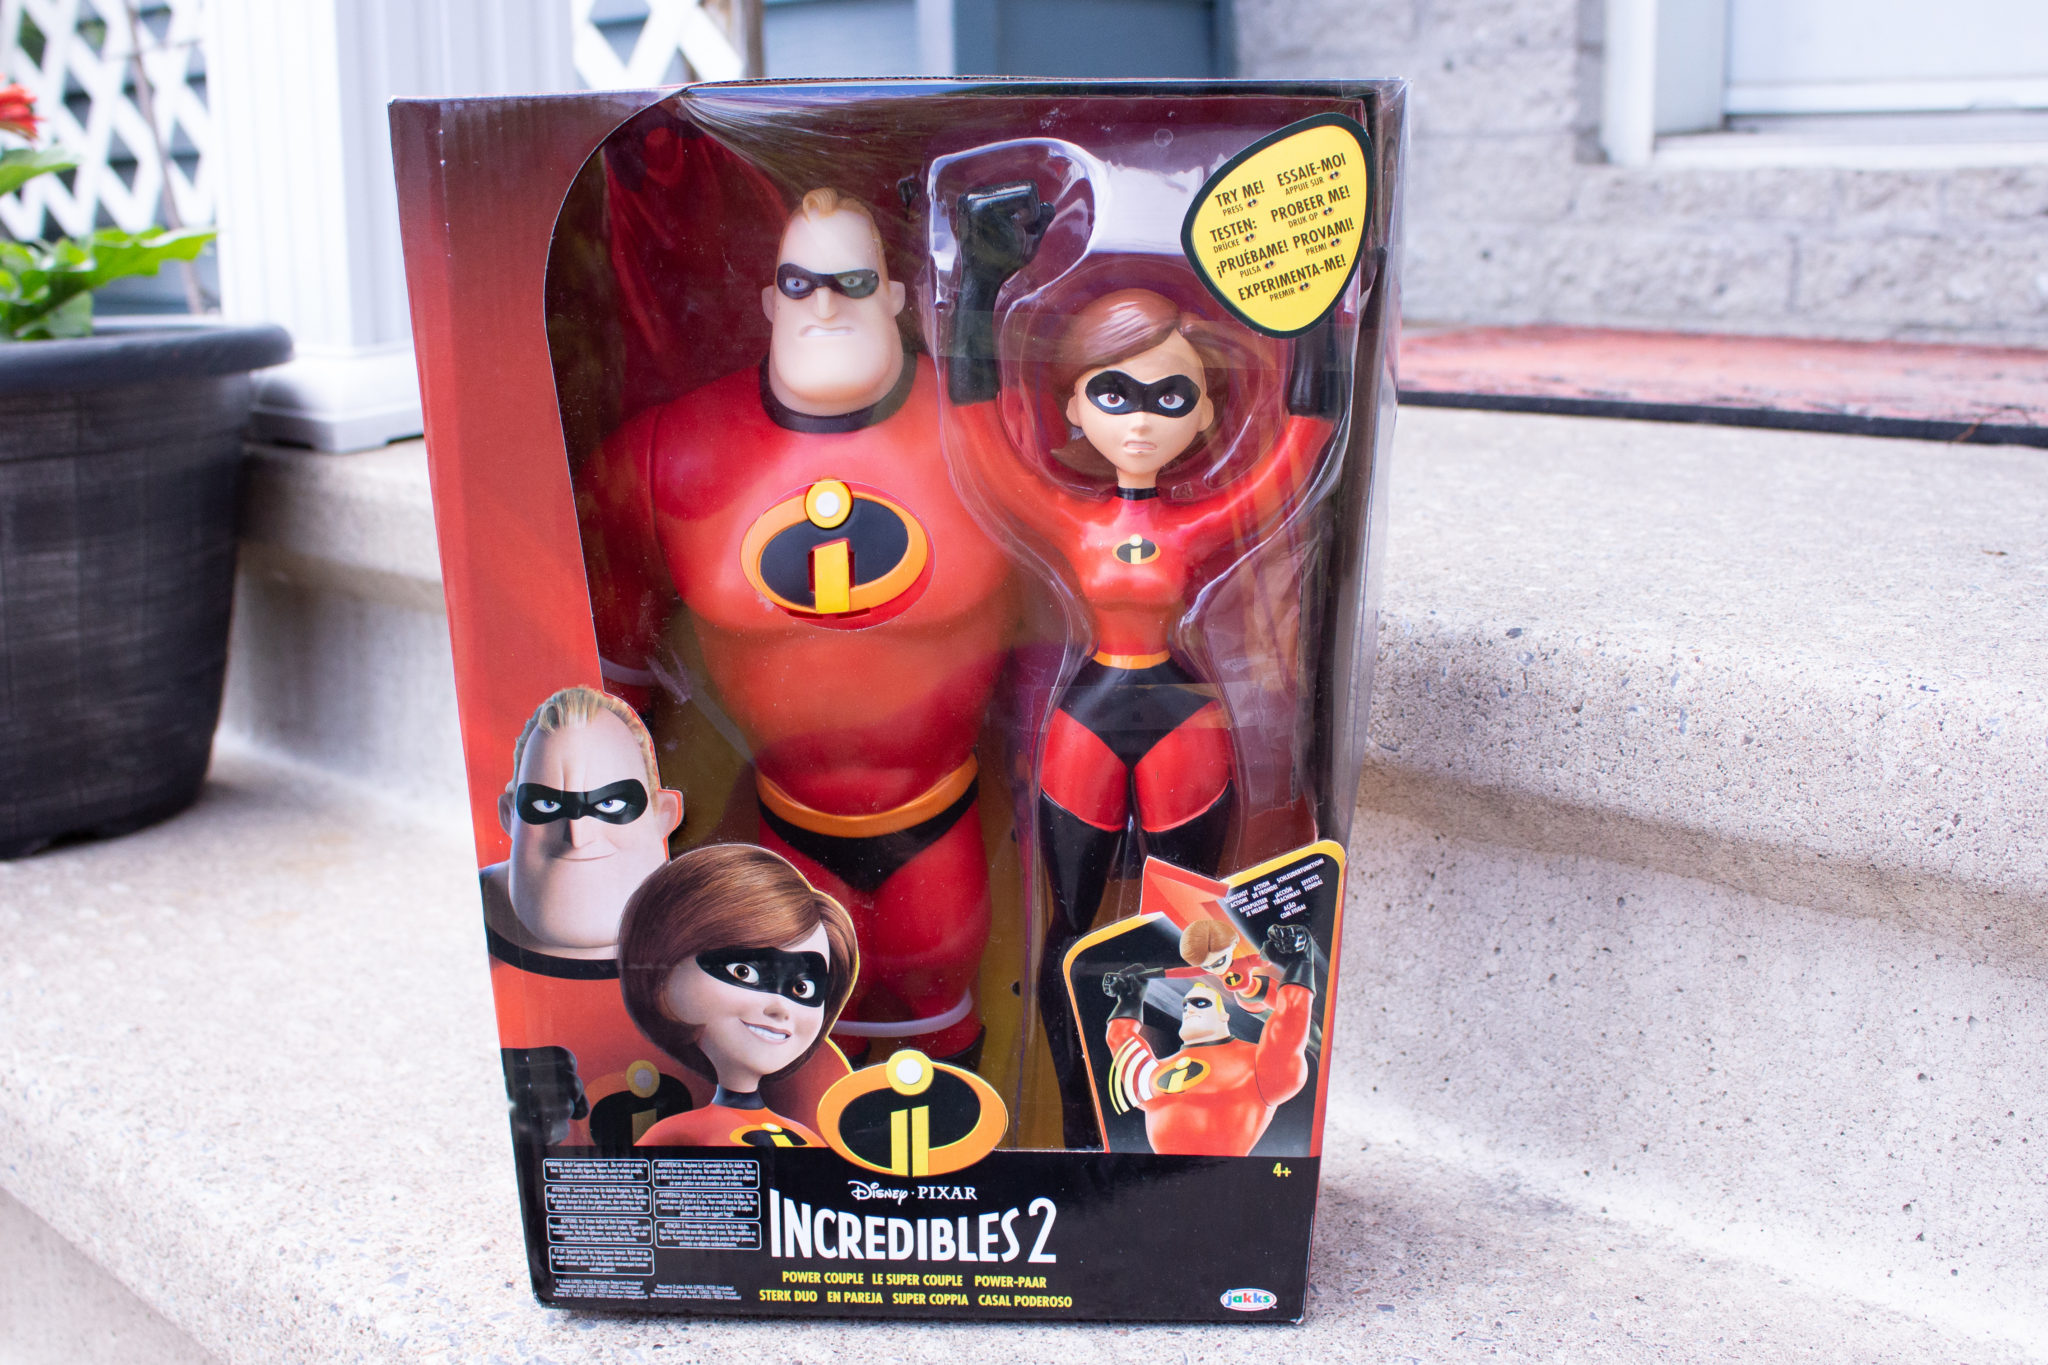 Celebrate The Incredibles 2 With New Releases From Jakks Pacific